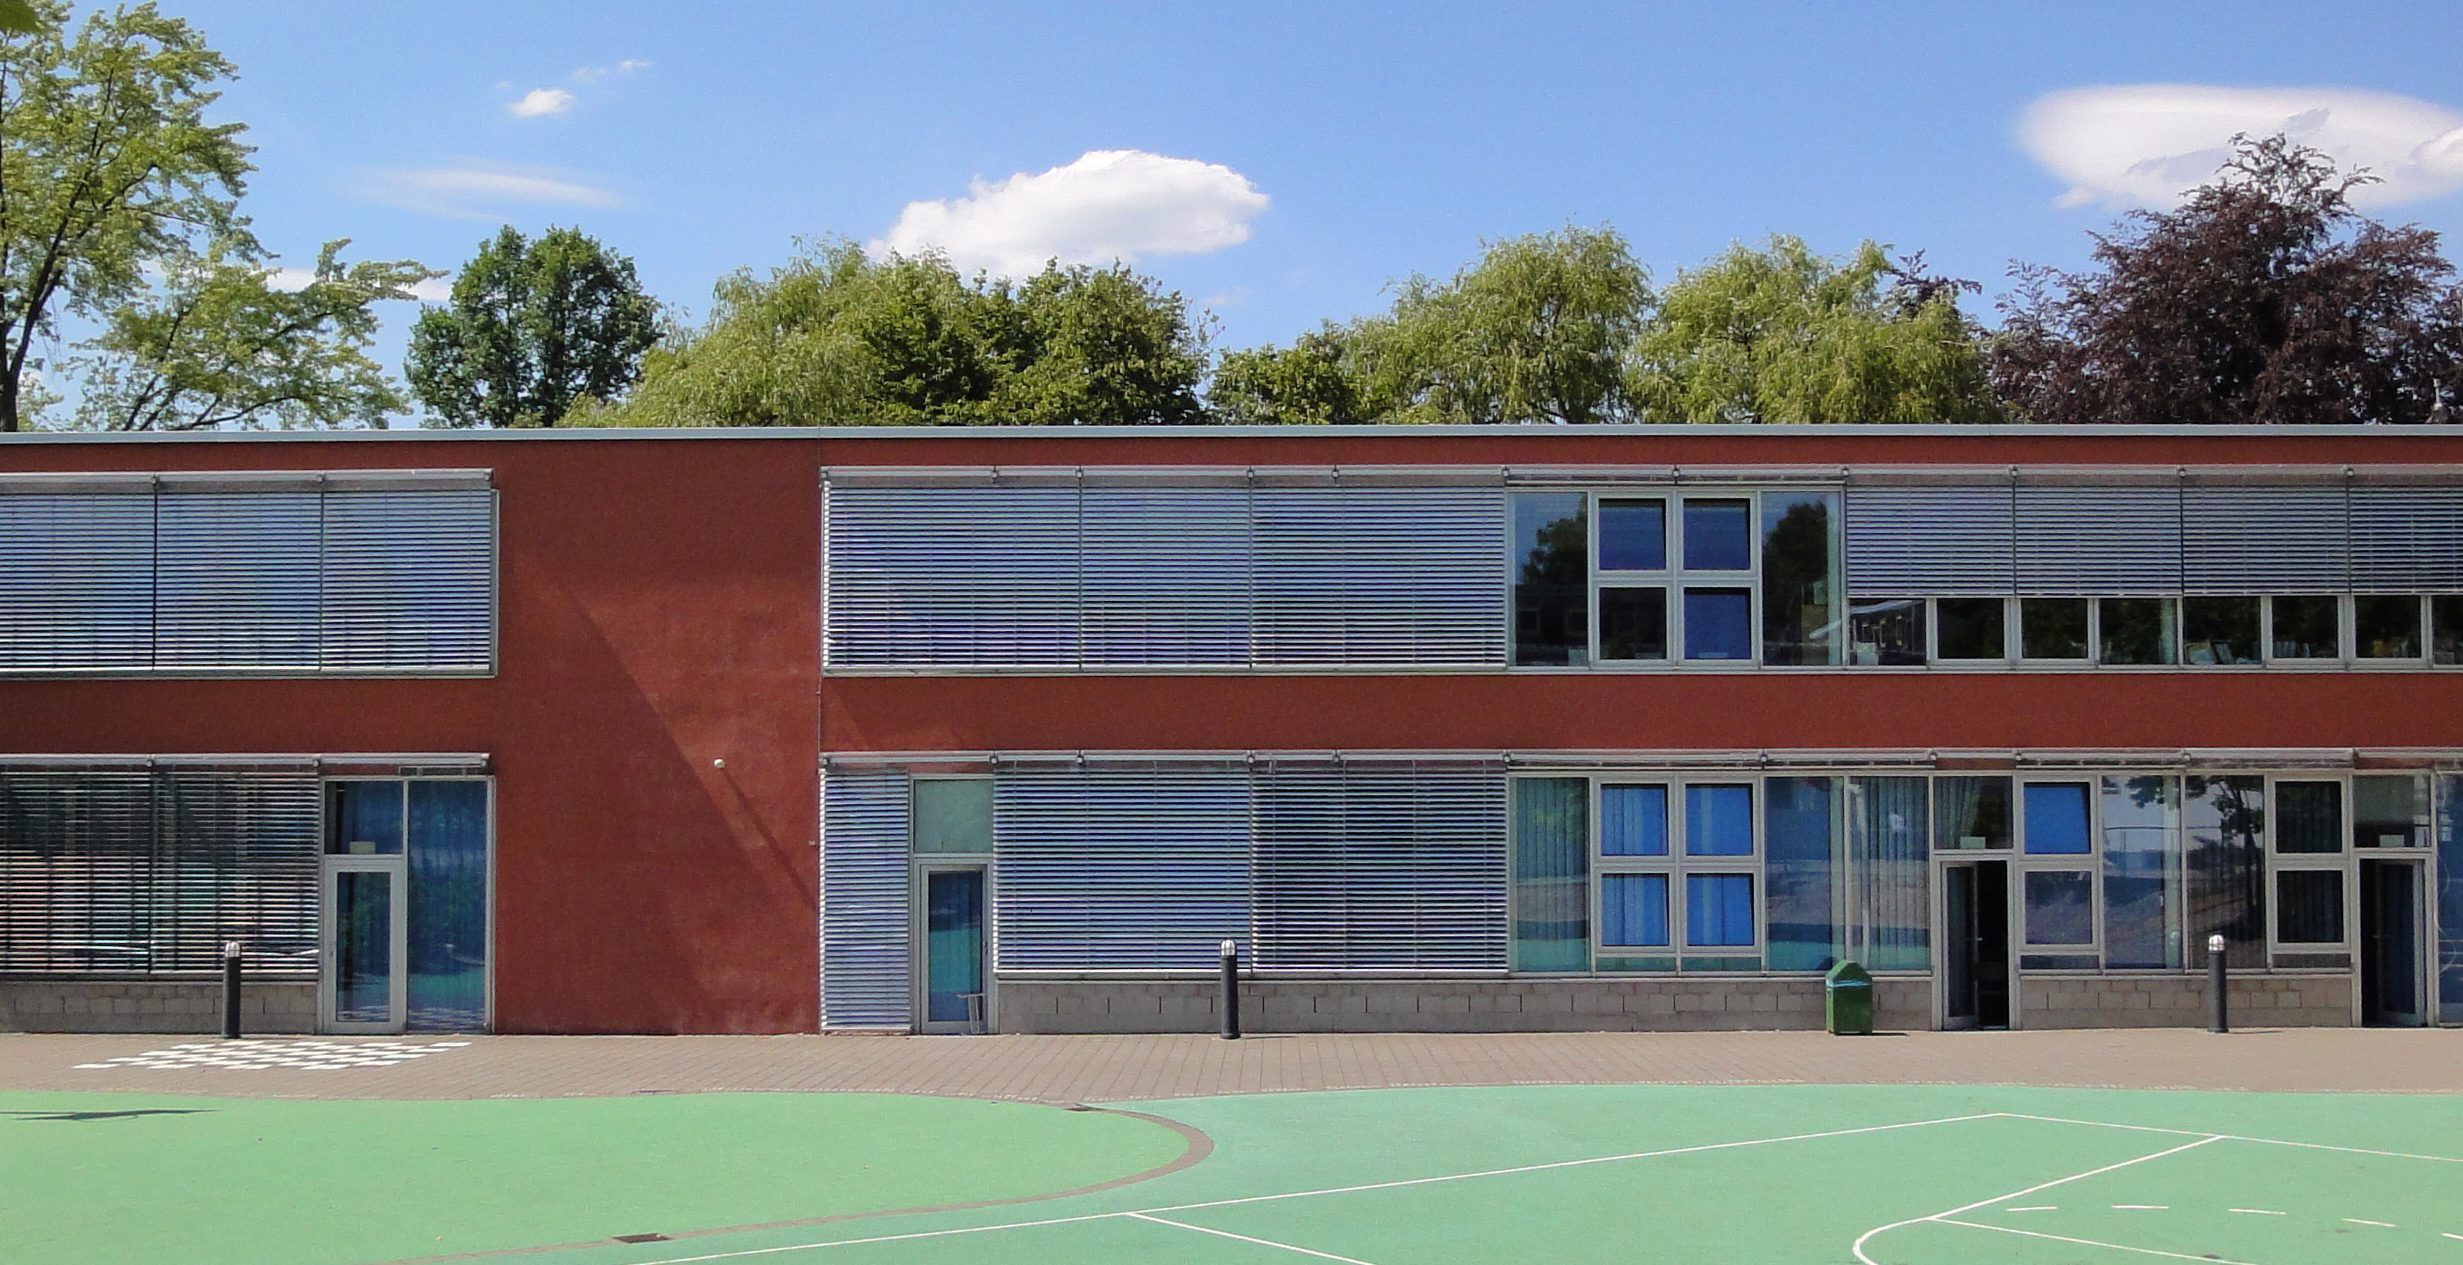 L-shaped School Building